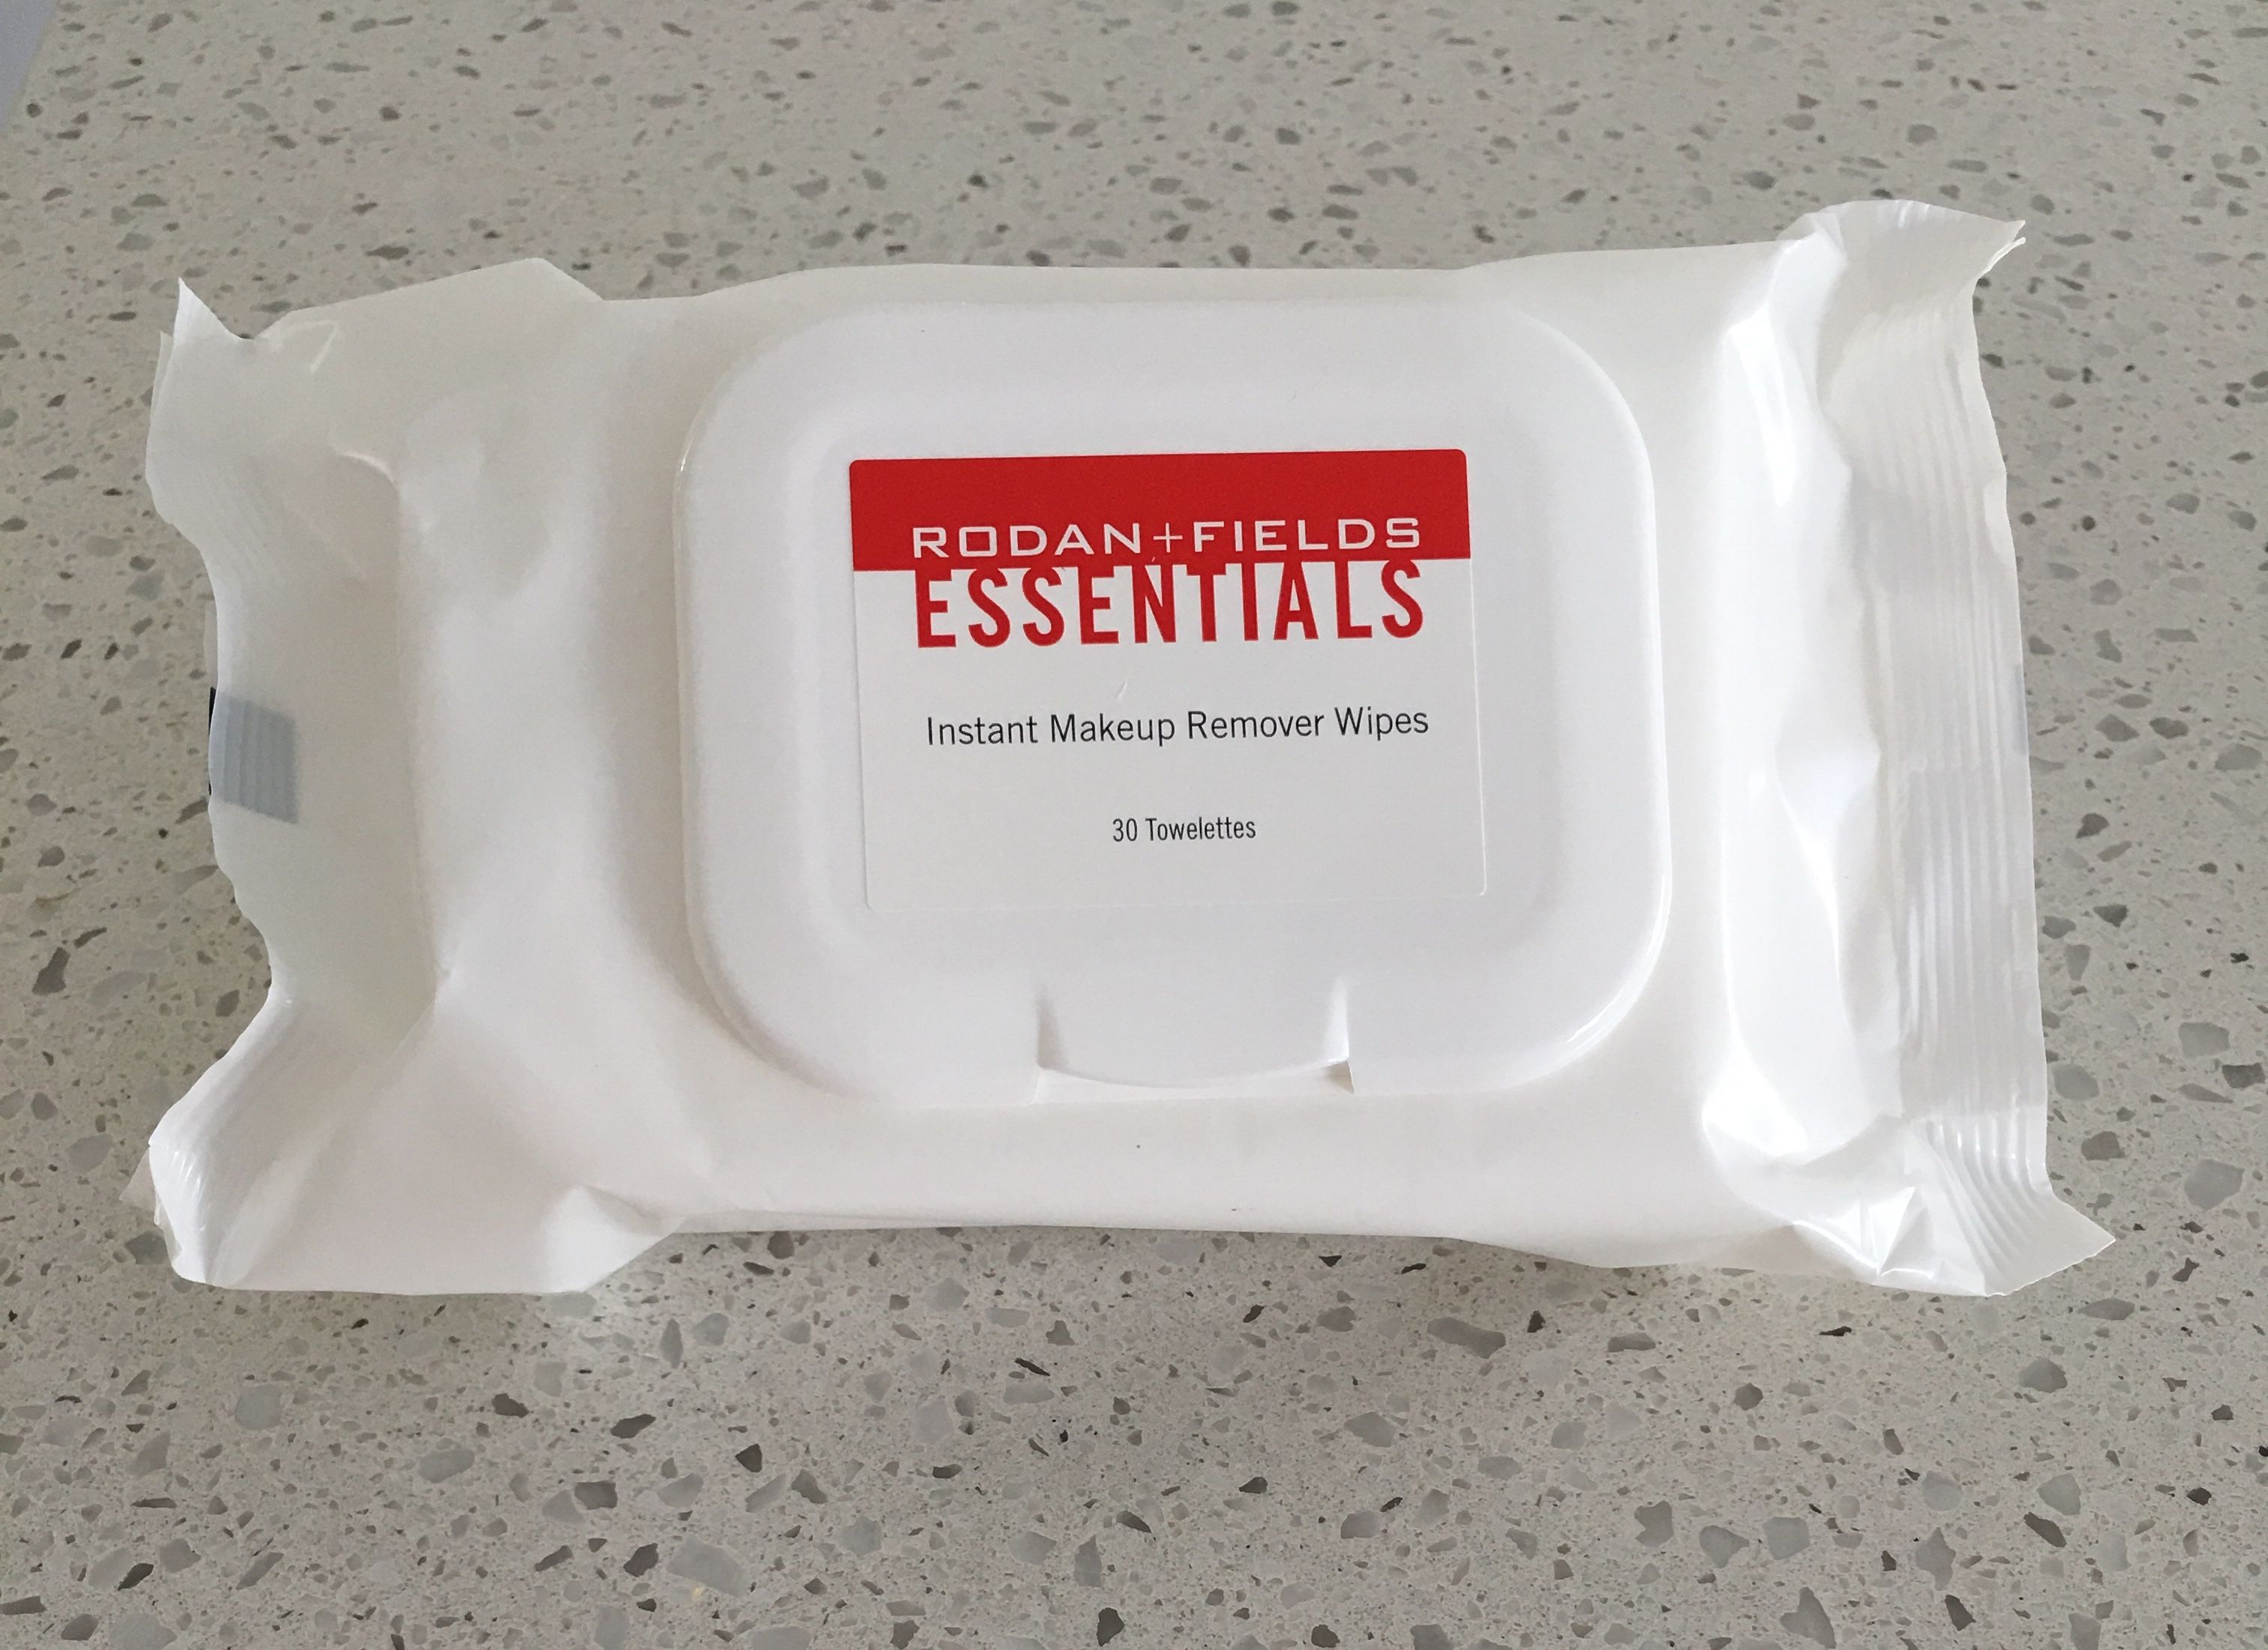 Rodan+Fields Instant Makeup Remover Wipes prepare your